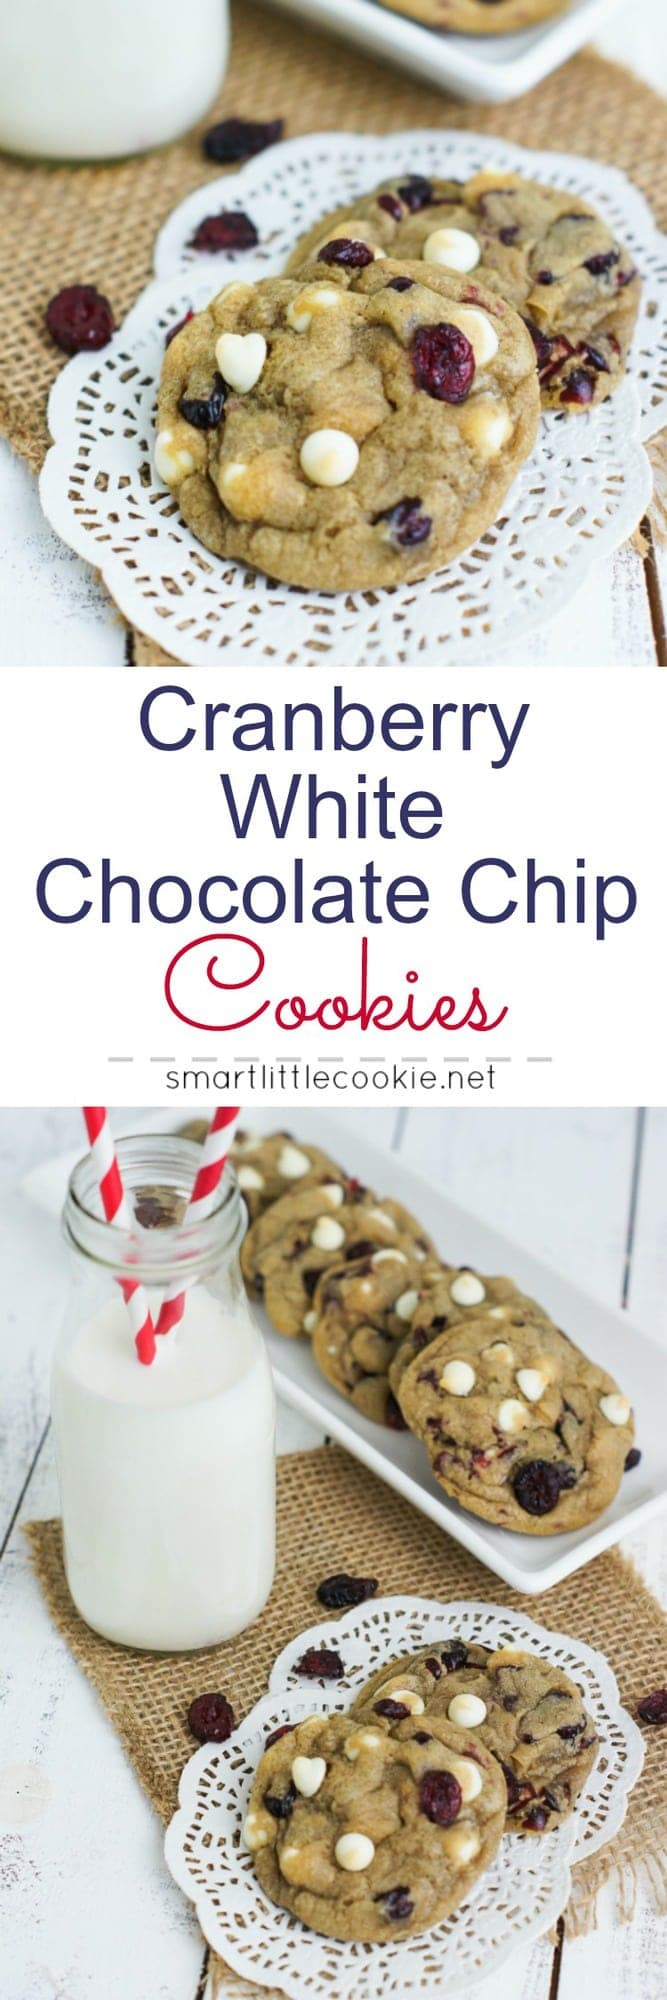 Easy to make and perfectly soft cranberry white chocolate chip cookies. mydominicankitchen.com #cookies